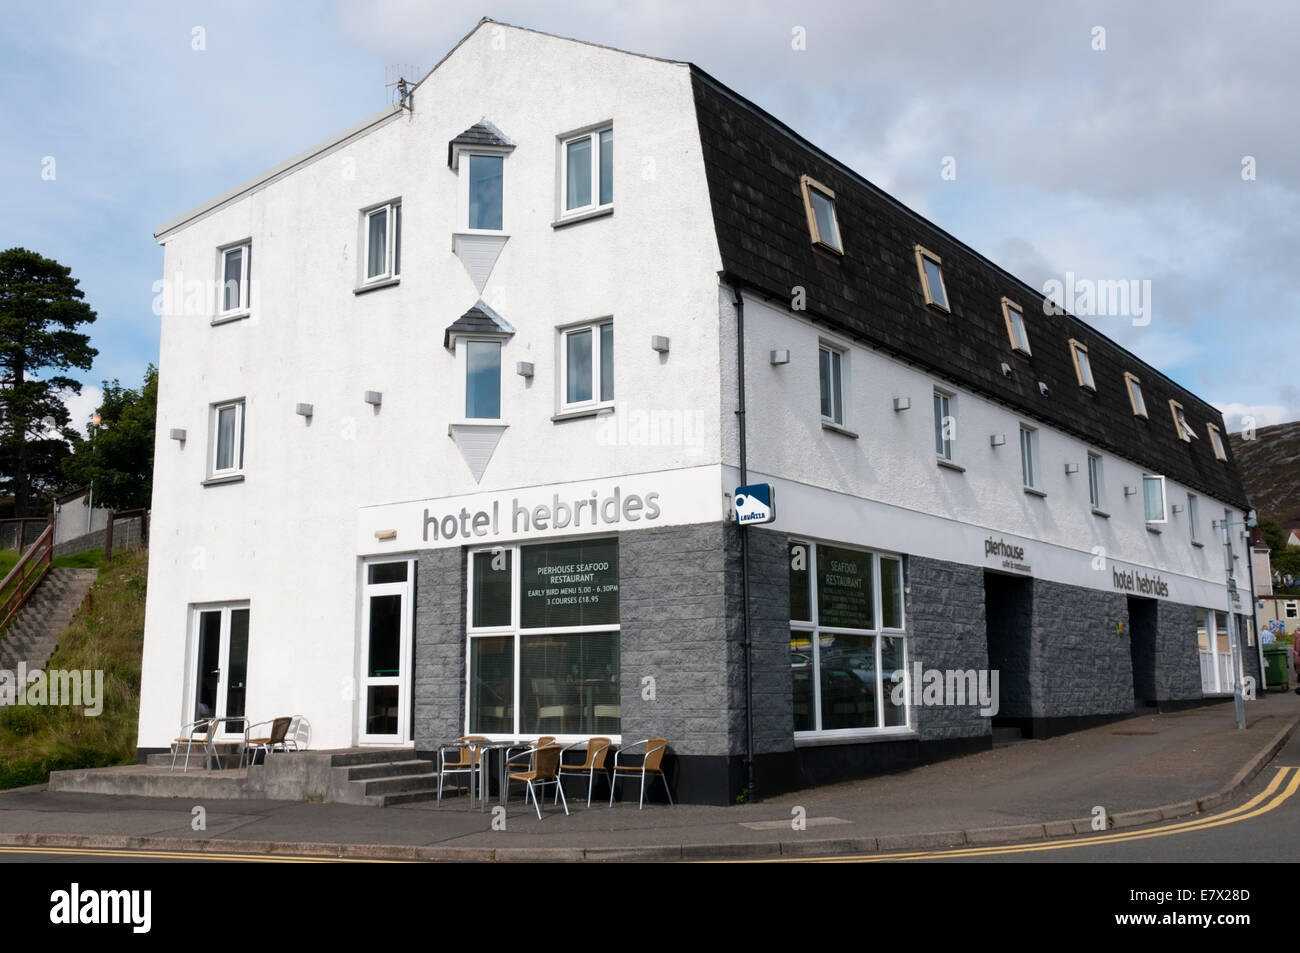 The Hotel Hebrides and Pierhead Seafood Restaurant in Tarbert on the Isle of Harris. - Stock Image